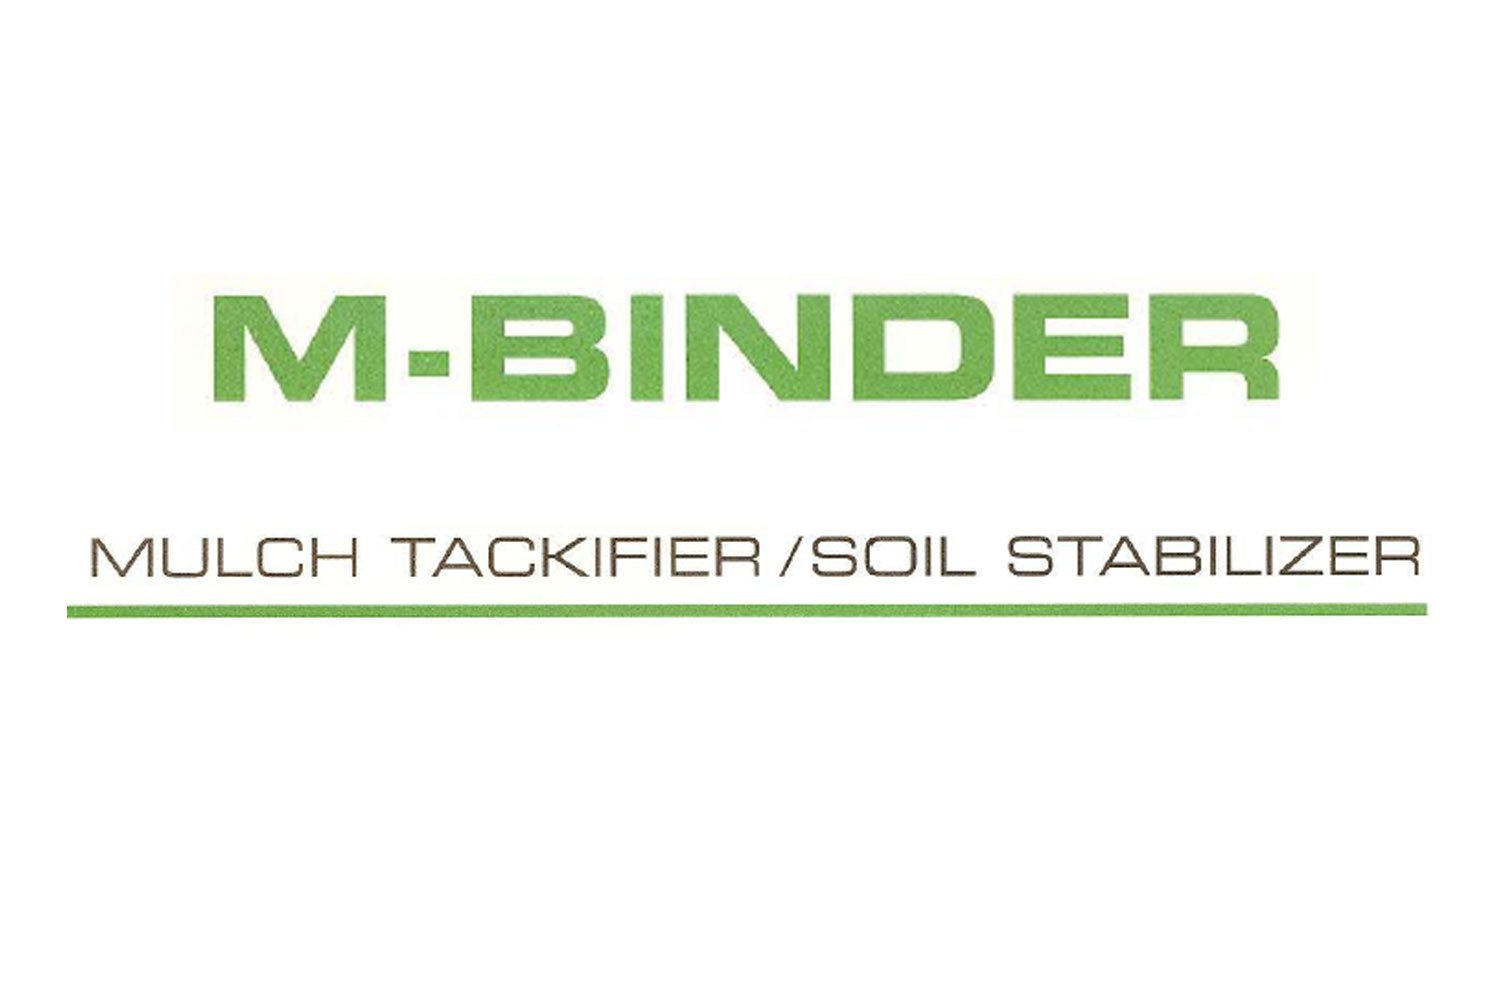 Nature S Seed M Binder Mulch Tackifier Soil Stabilizer 1 Lb